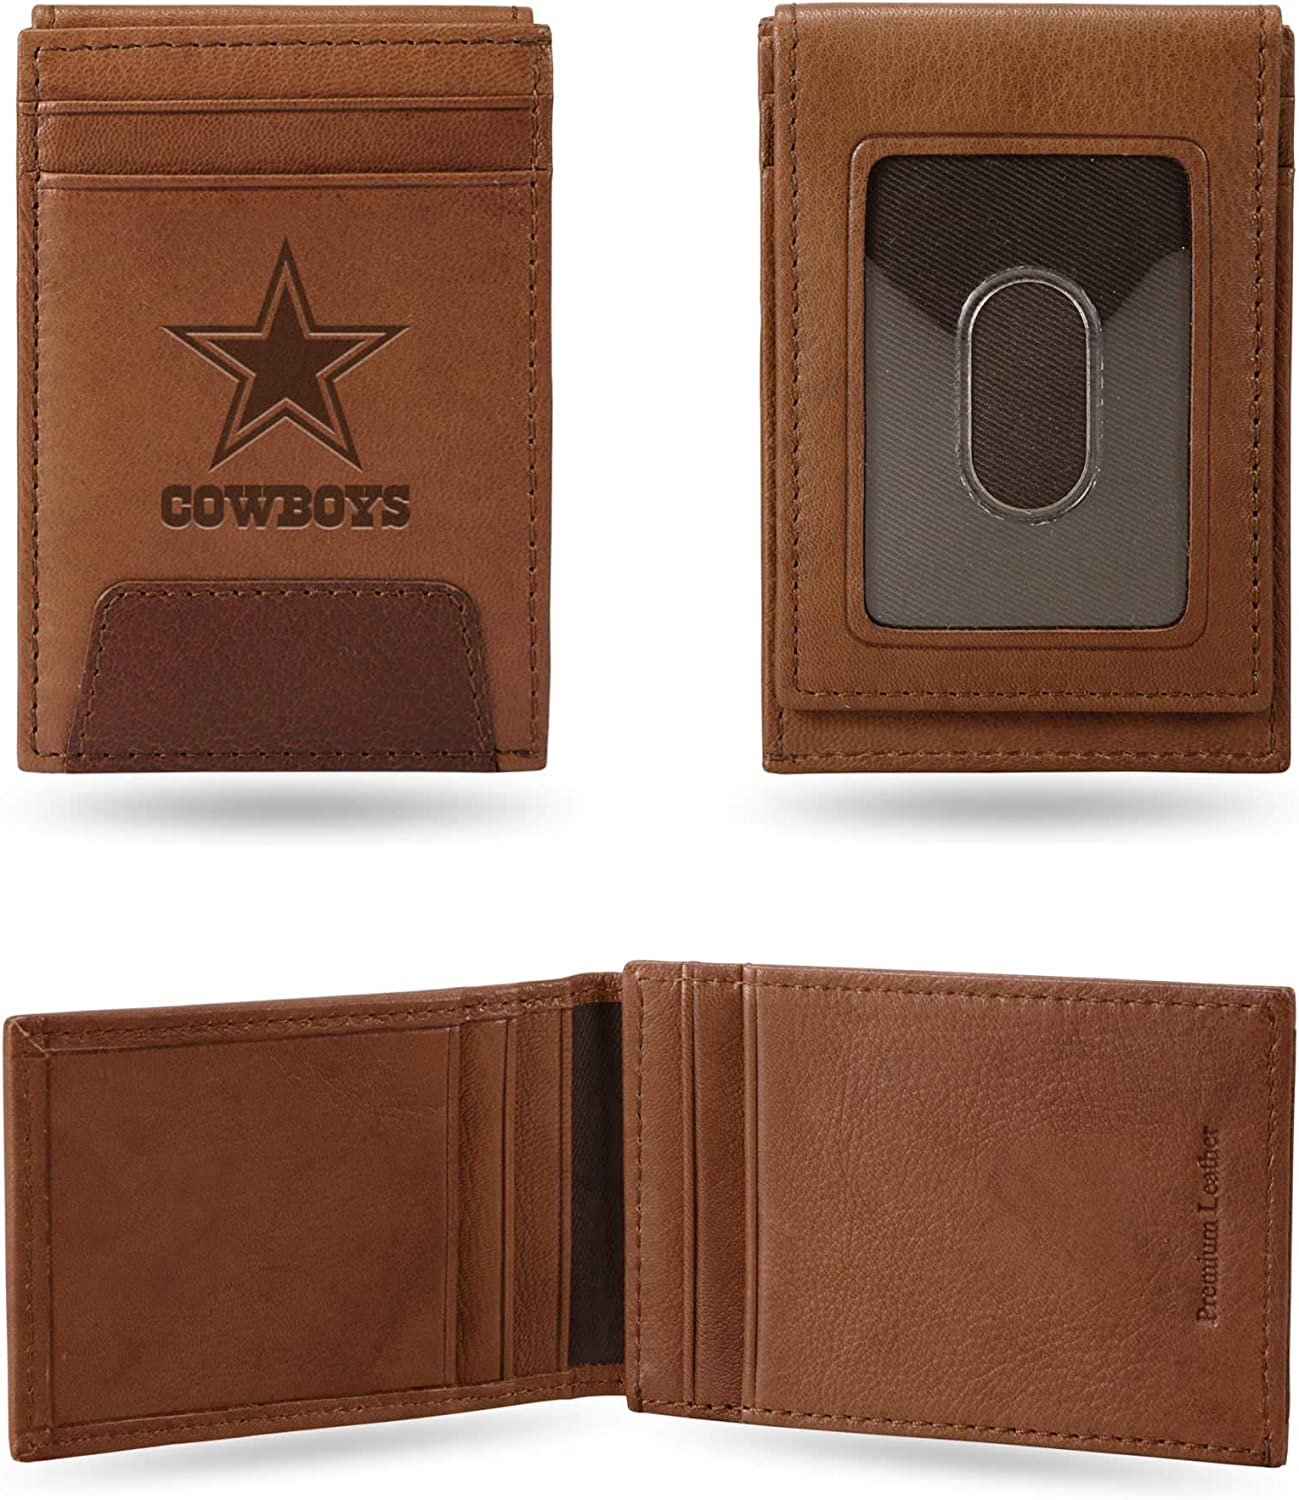 Rico Industries Cowboys Premium Japan Maker New Leather Front Mul Pocket Wallet Shipping included